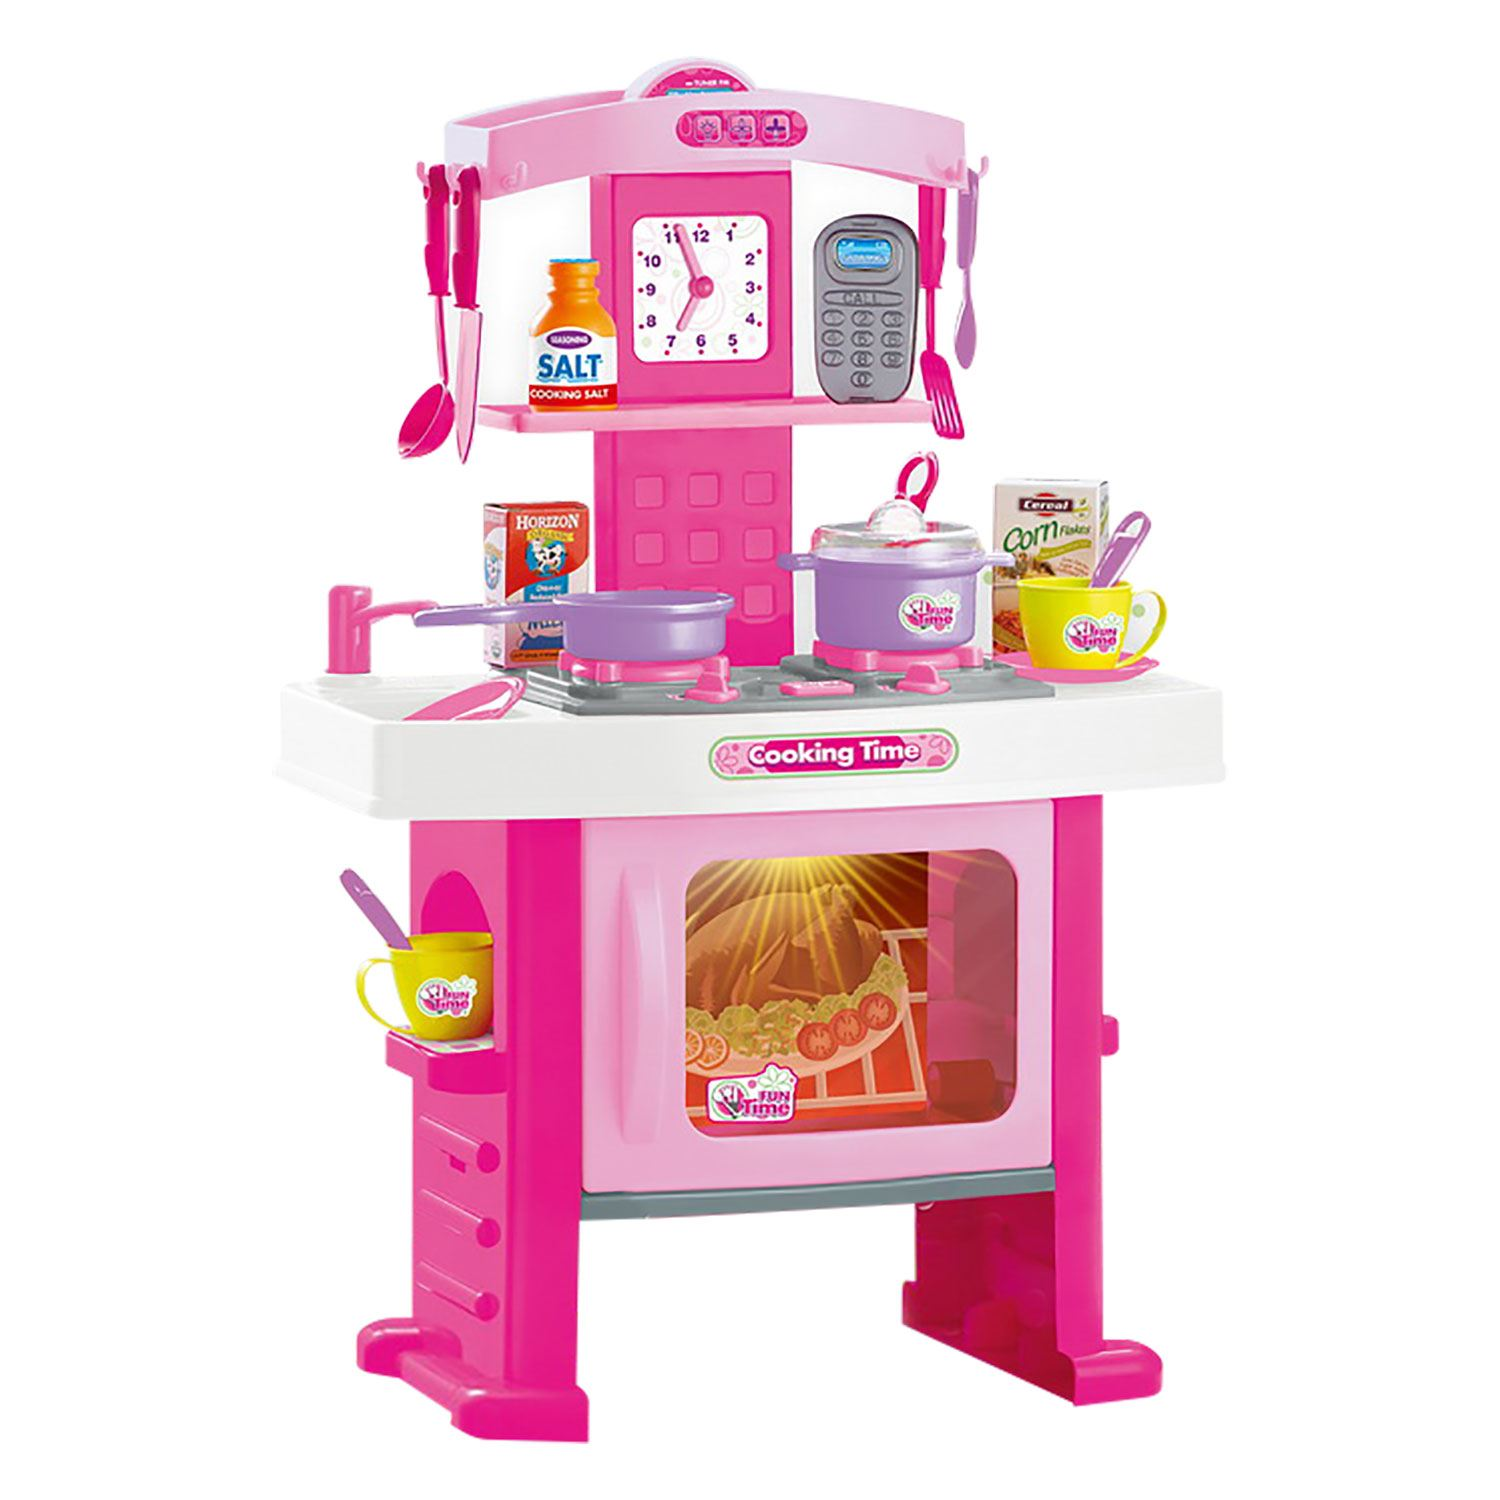 Toy Tool Kits For Girls : Boys girls childrens kids kitchen play set pretend toy